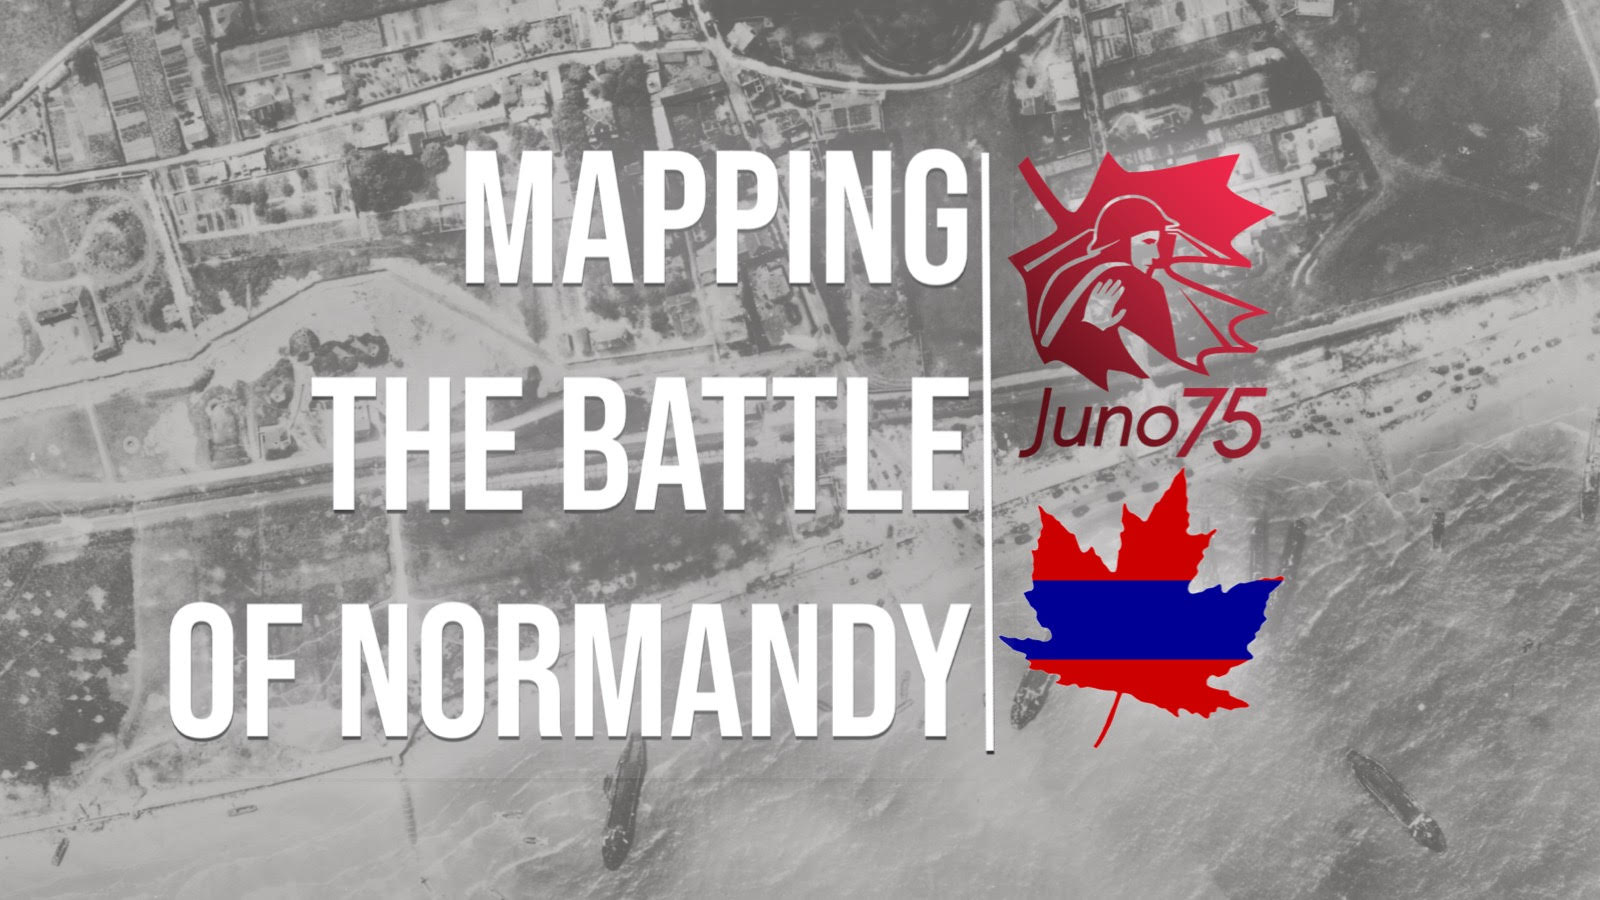 mapping the battle of normandy.jpg